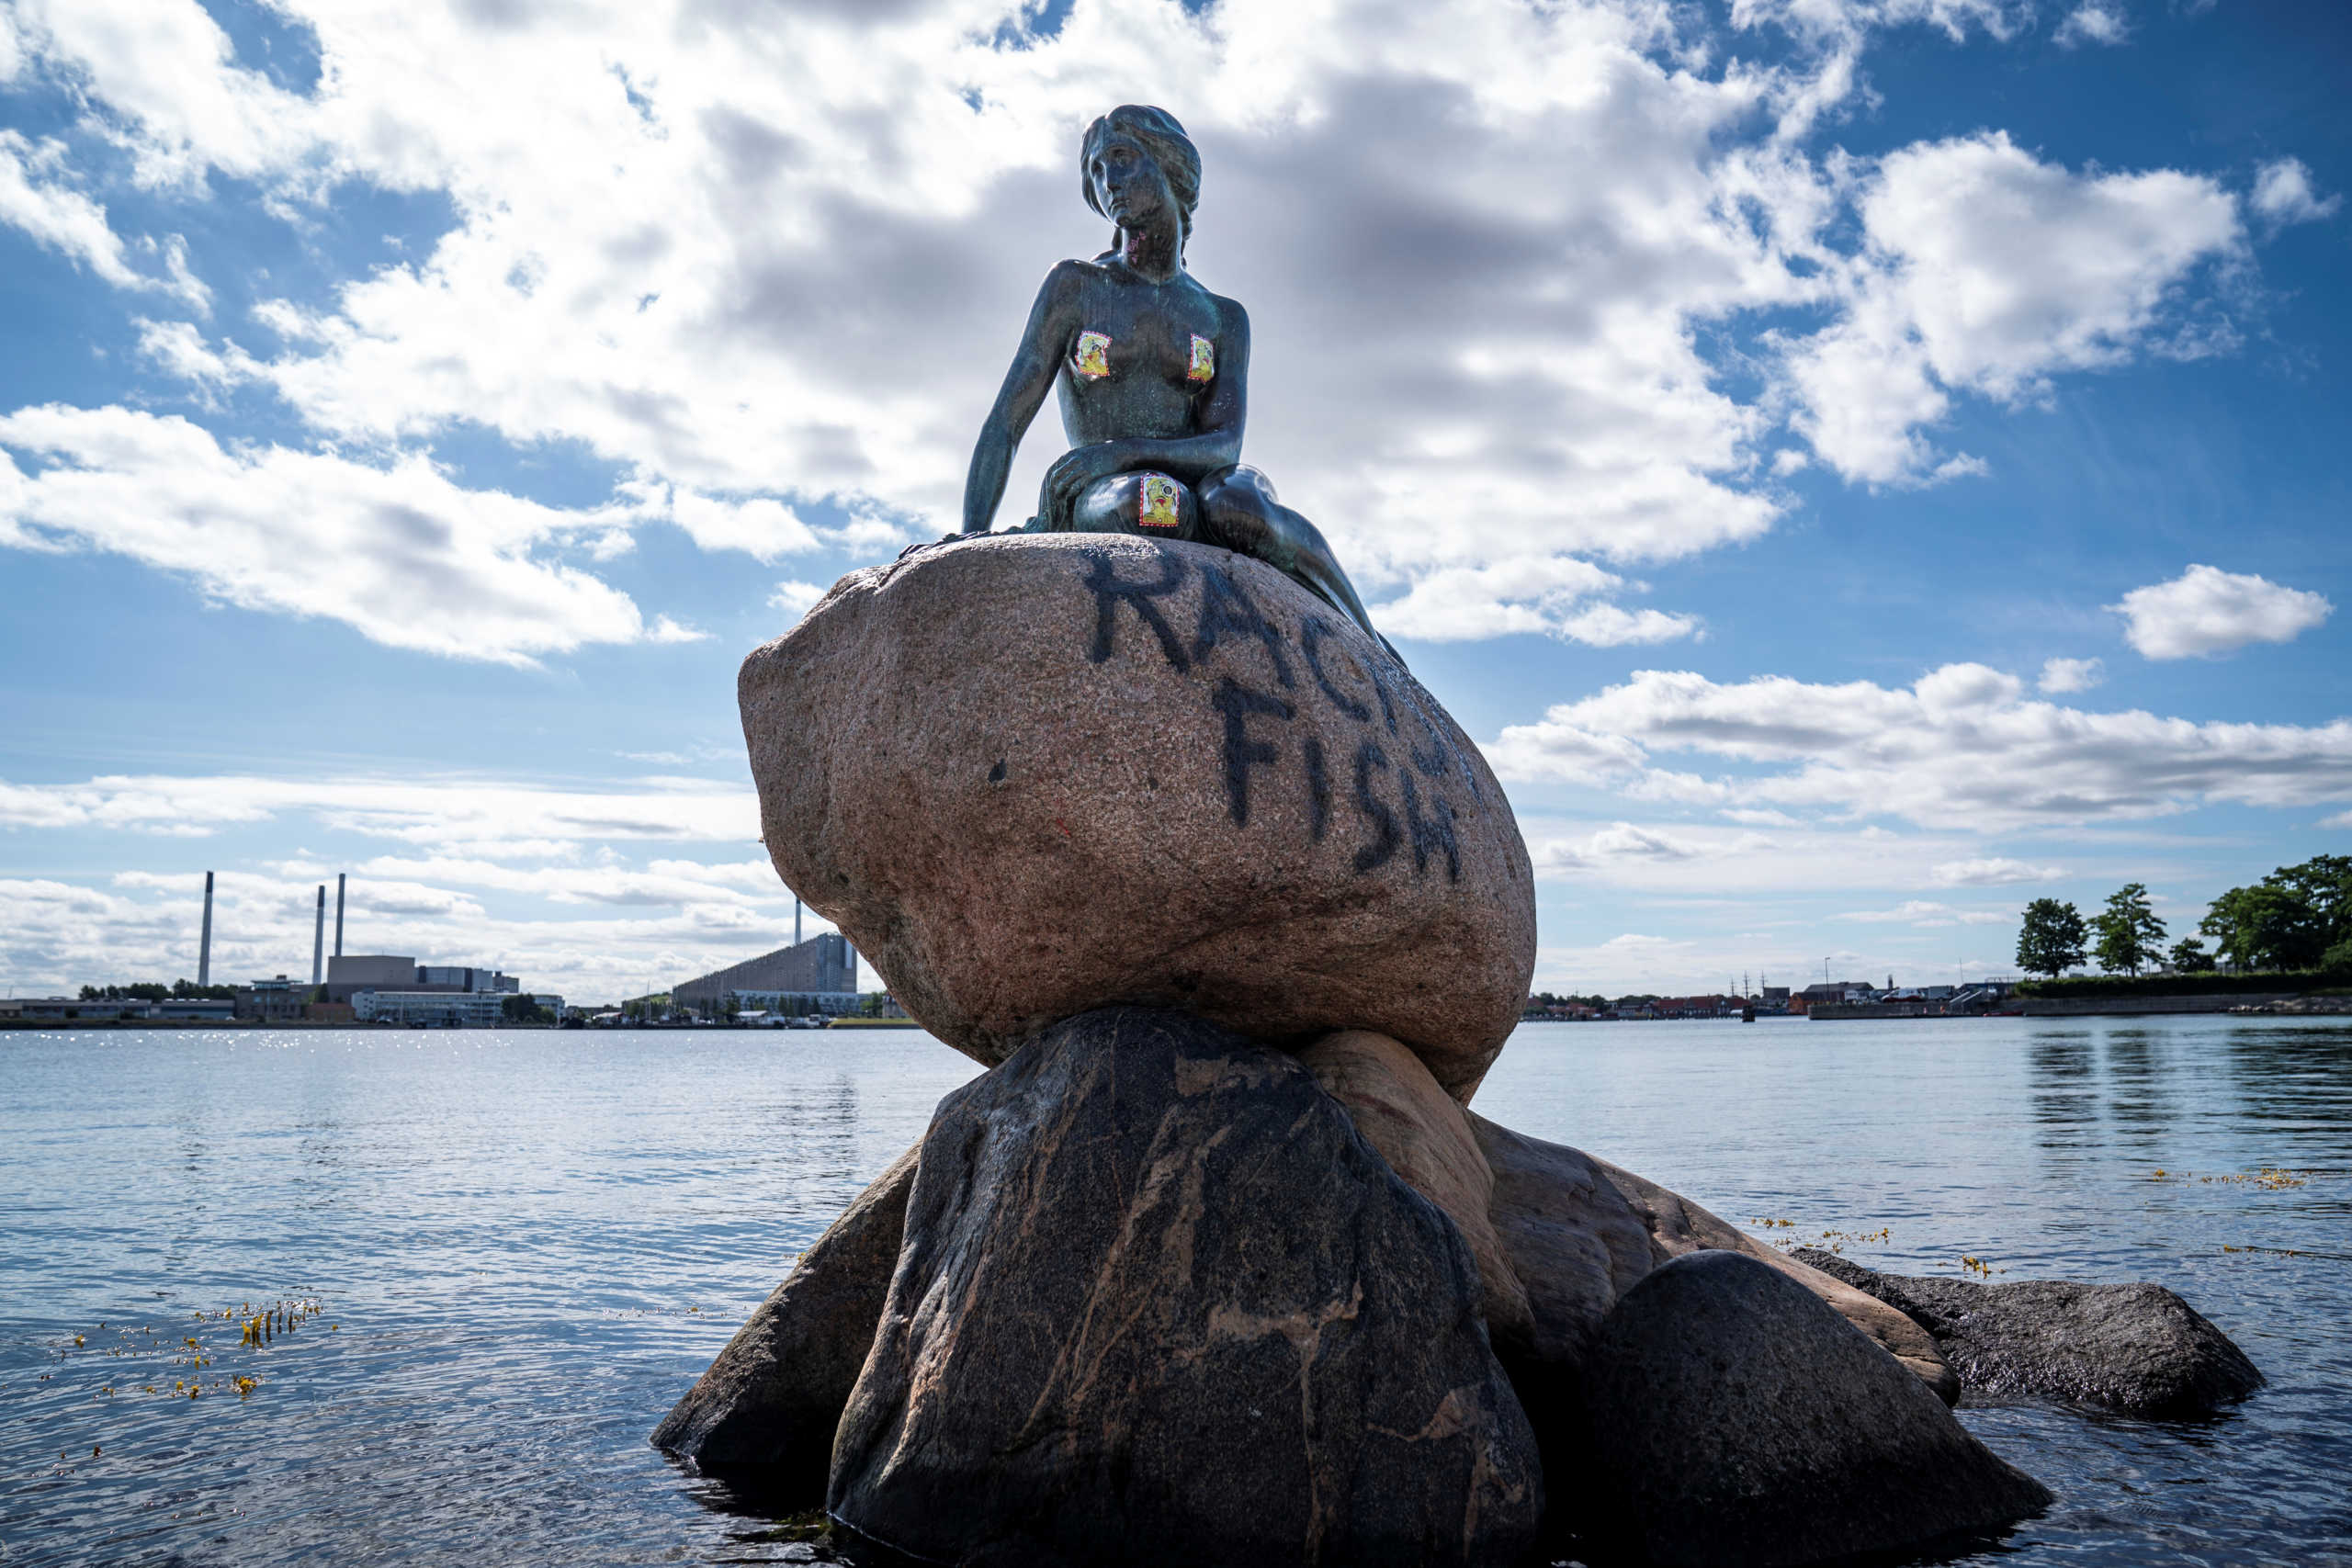 """A graffiti reading """"Racist Fish"""" is seen on a statue of """"The Little Mermaid"""" in Copenhagen, Denmark July 3, 2020. Ritzau Scanpix/Niels Christian Vilmann via REUTERS    ATTENTION EDITORS - THIS IMAGE WAS PROVIDED BY A THIRD PARTY. DENMARK OUT. NO COMMERCIAL OR EDITORIAL SALES IN DENMARK."""